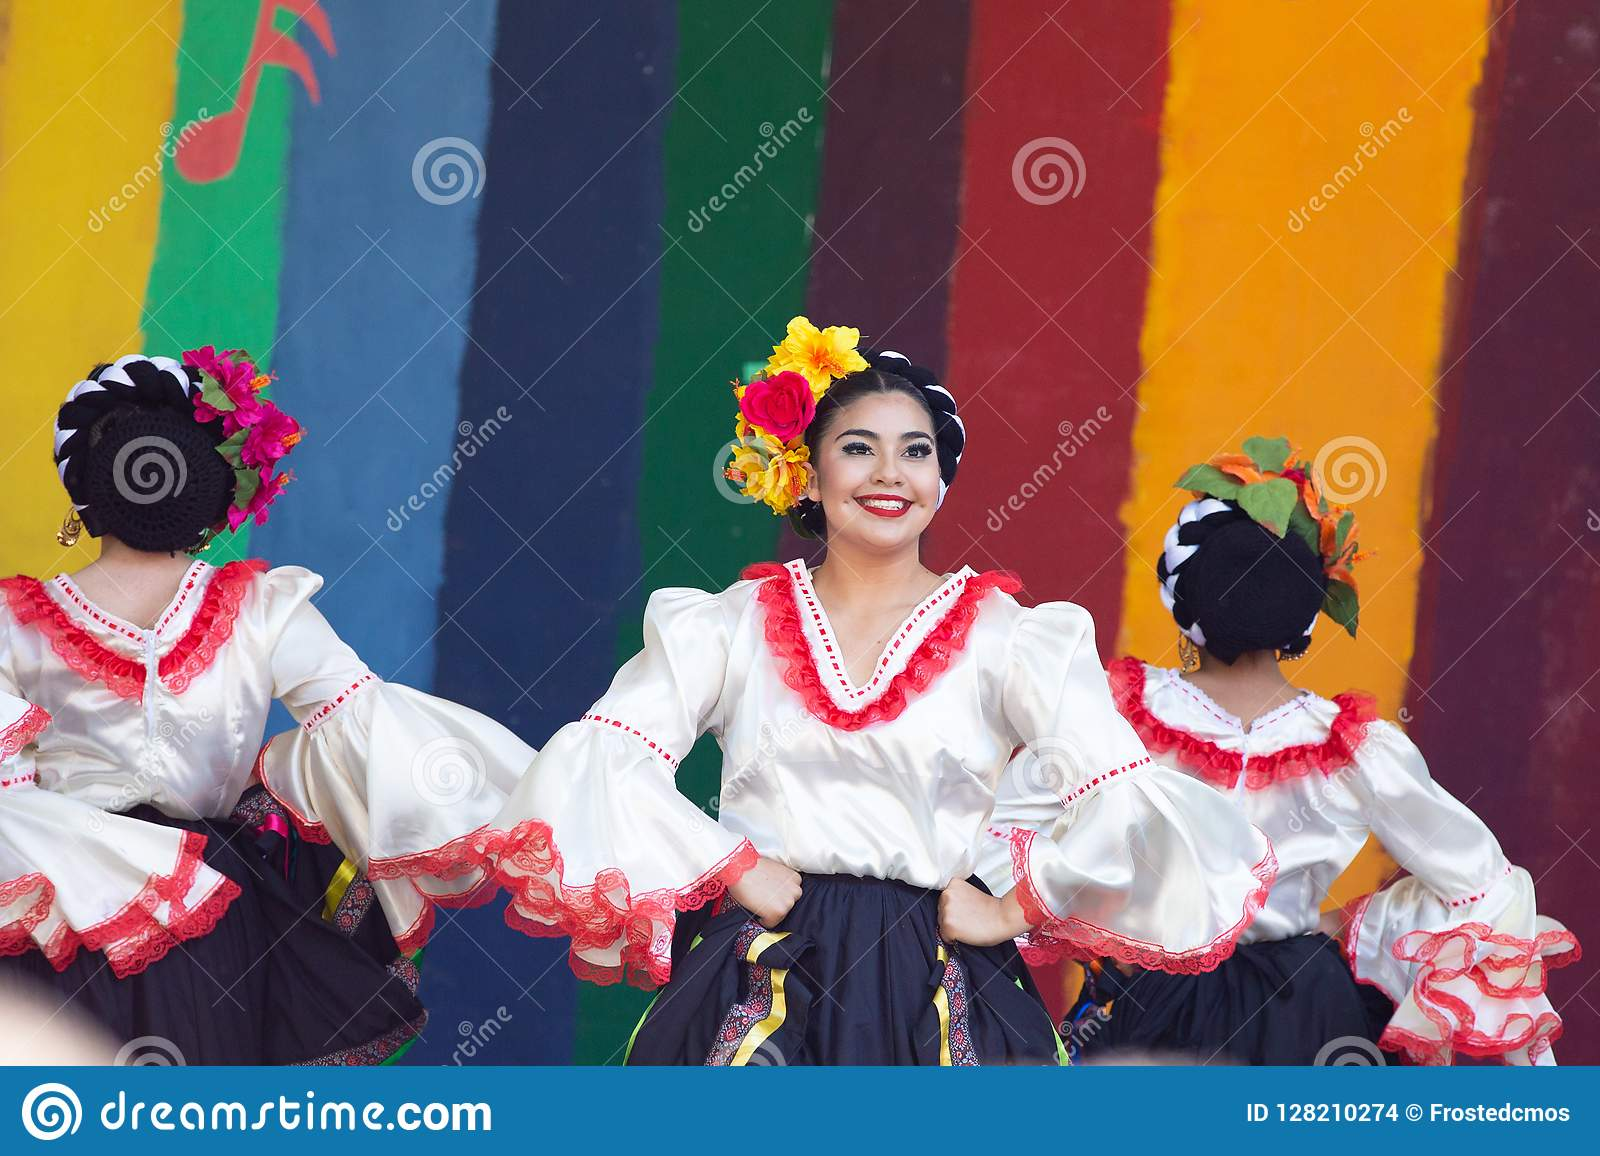 Cinco de mayo celebration in Portland, Oregon.